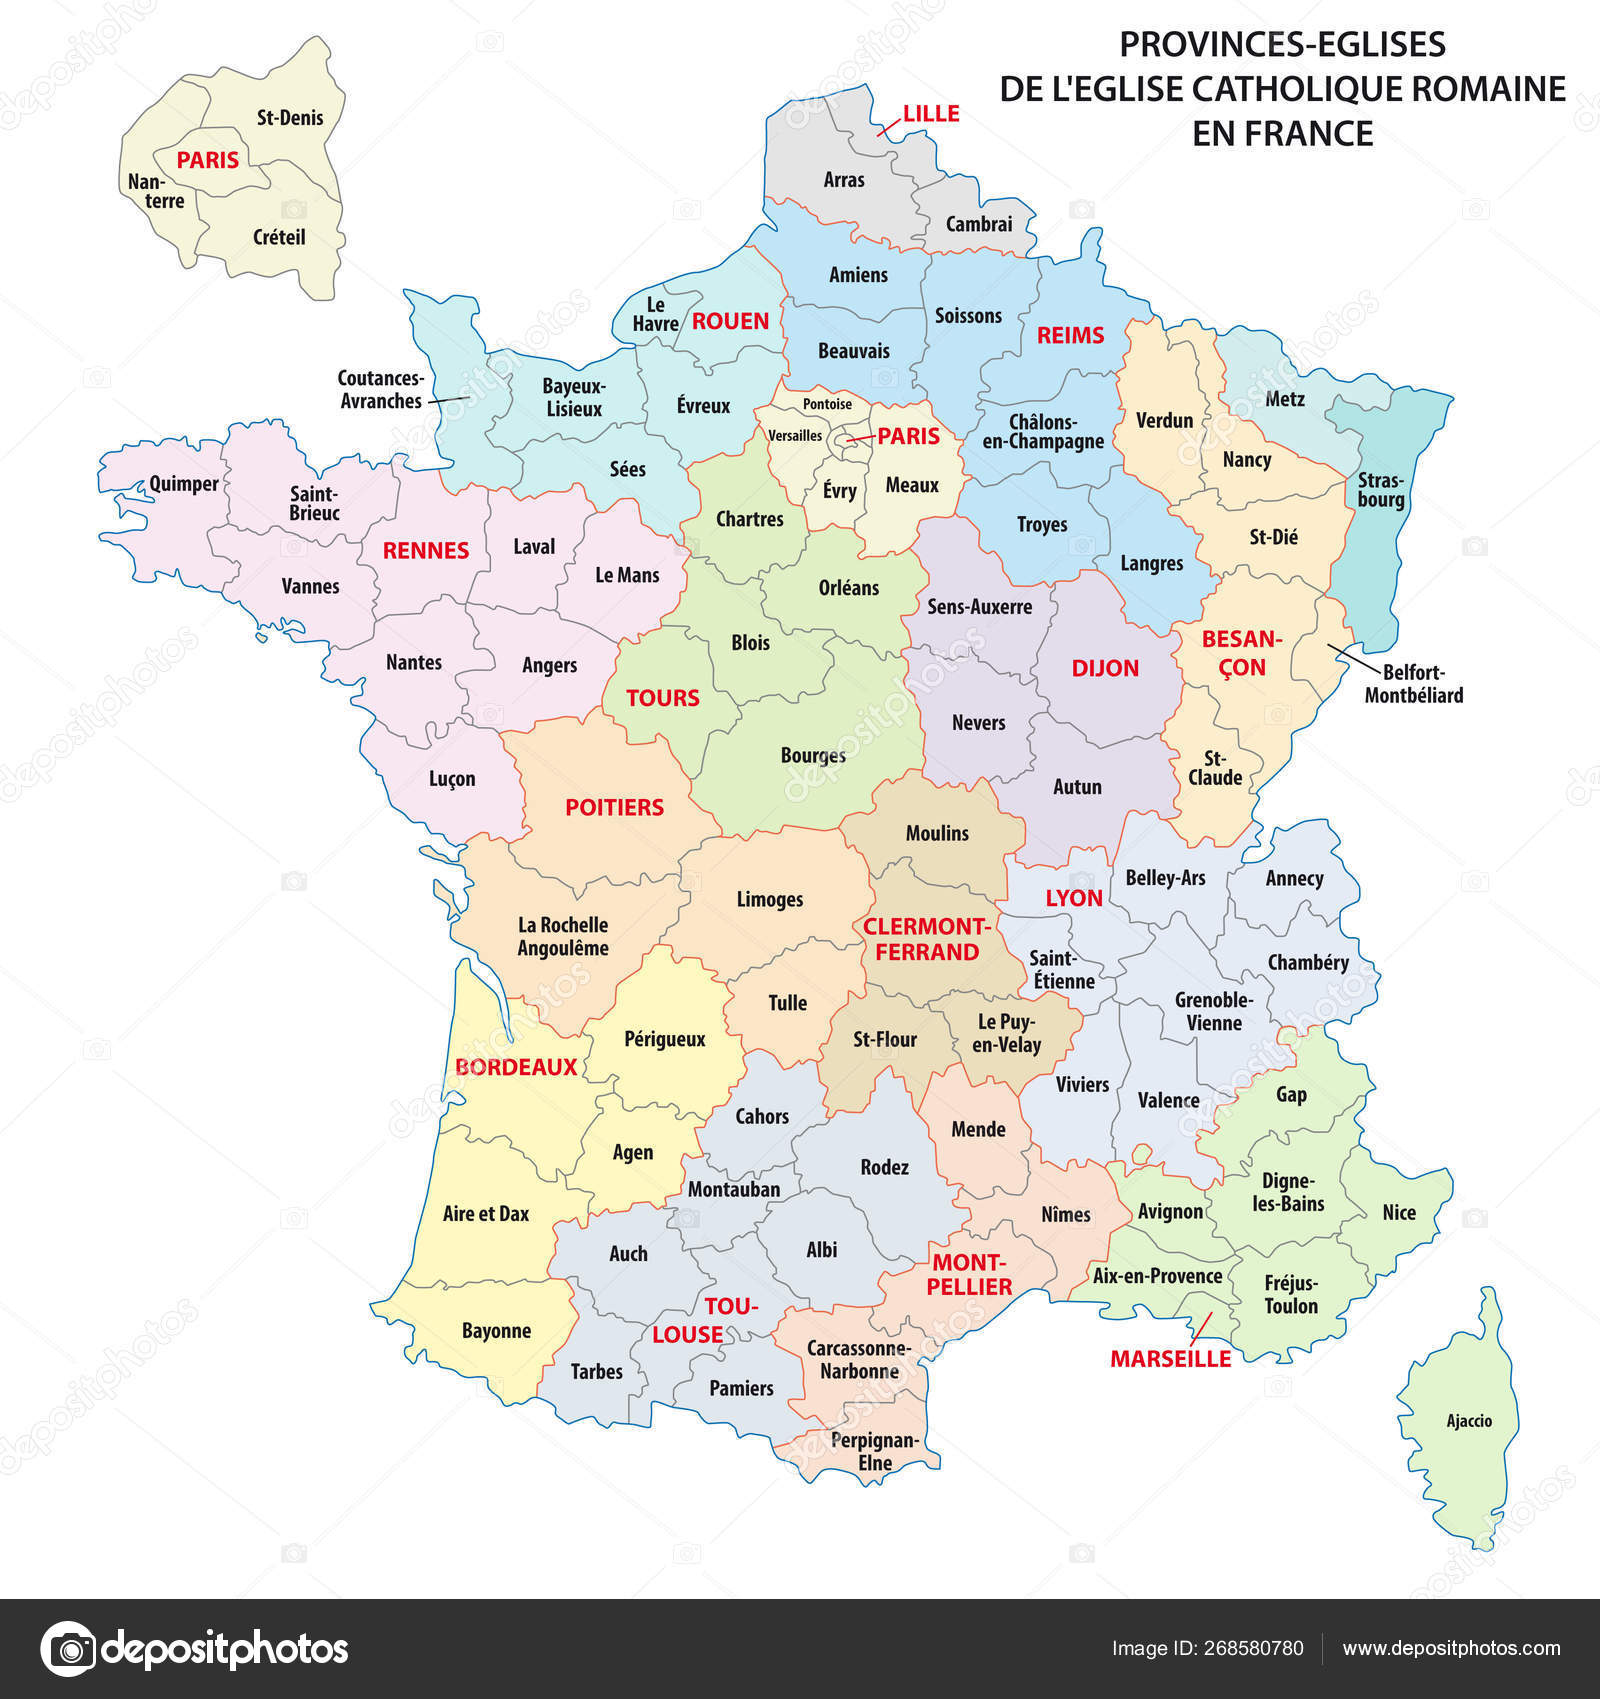 Map Of Provinces In France.Map Of The Roman Catholic Church Provinces In France Stock Vector